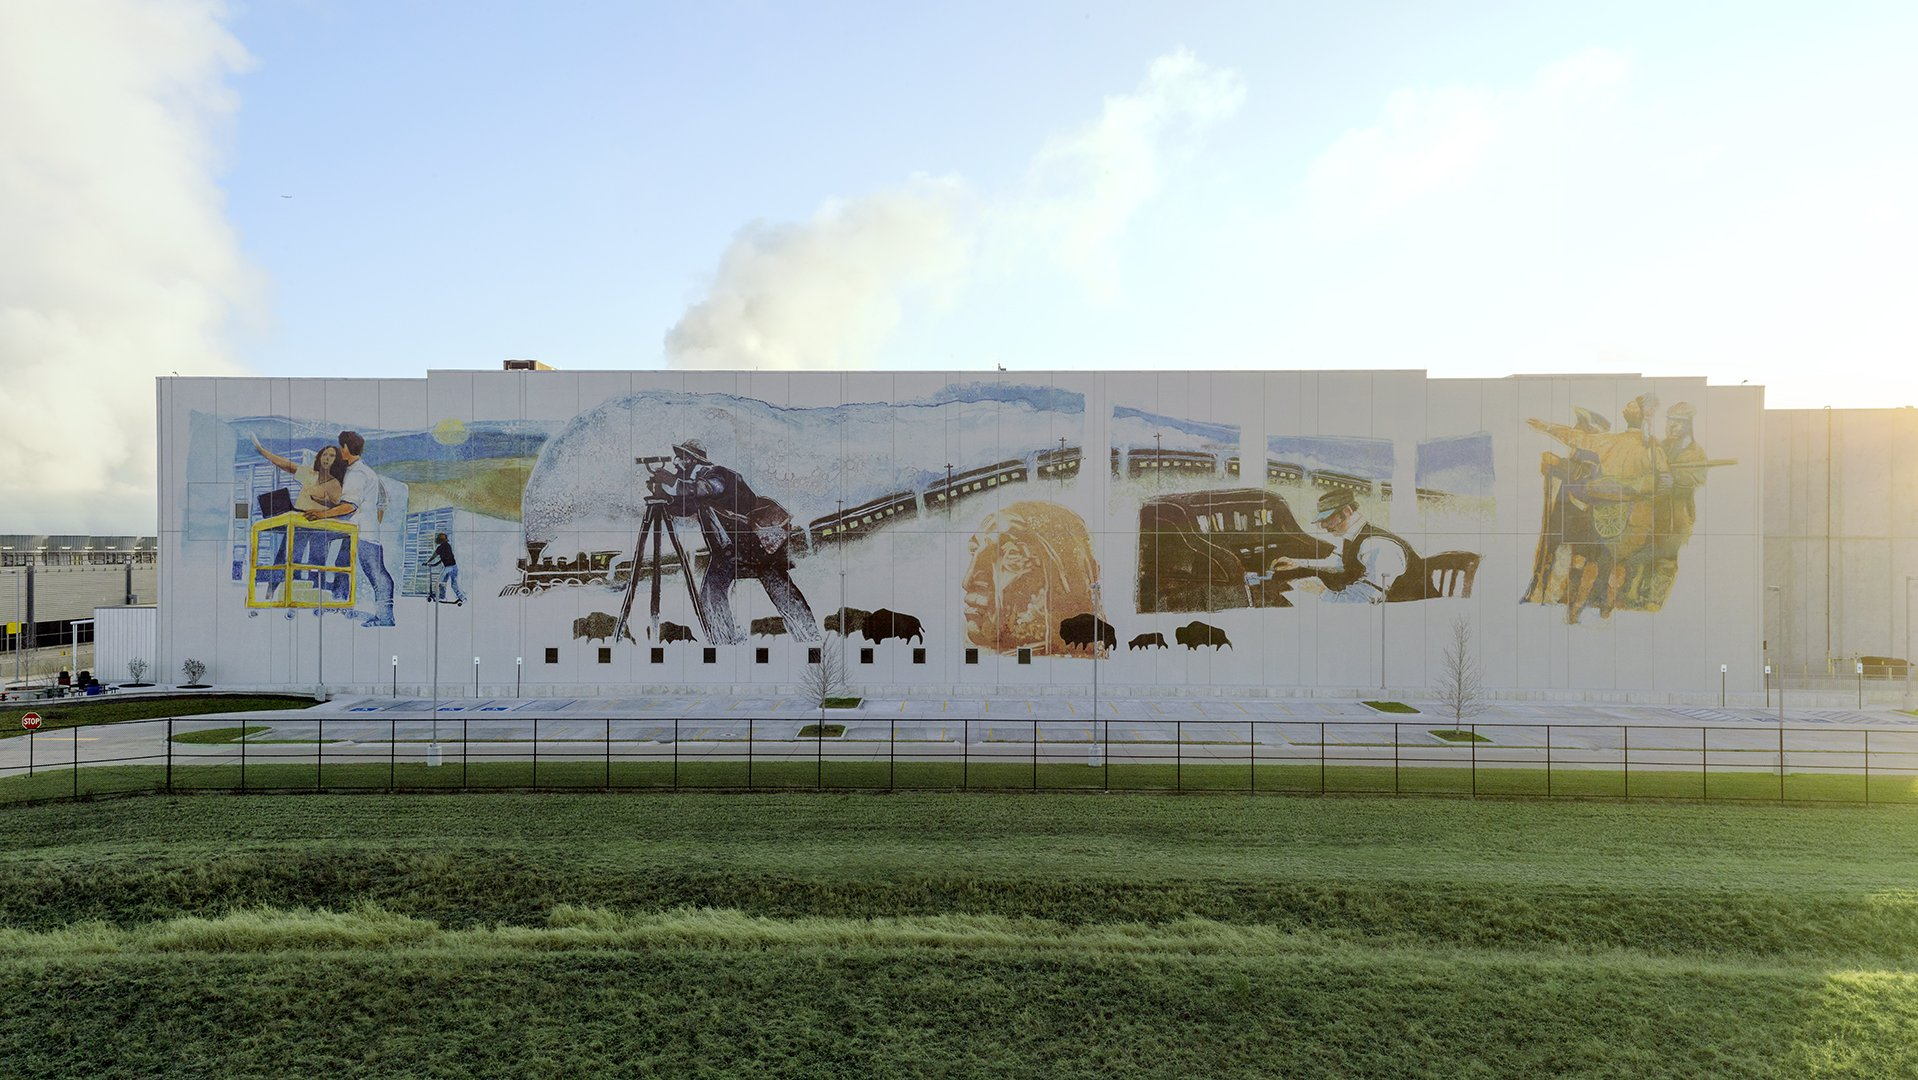 See our latest data center murals - Google Updates